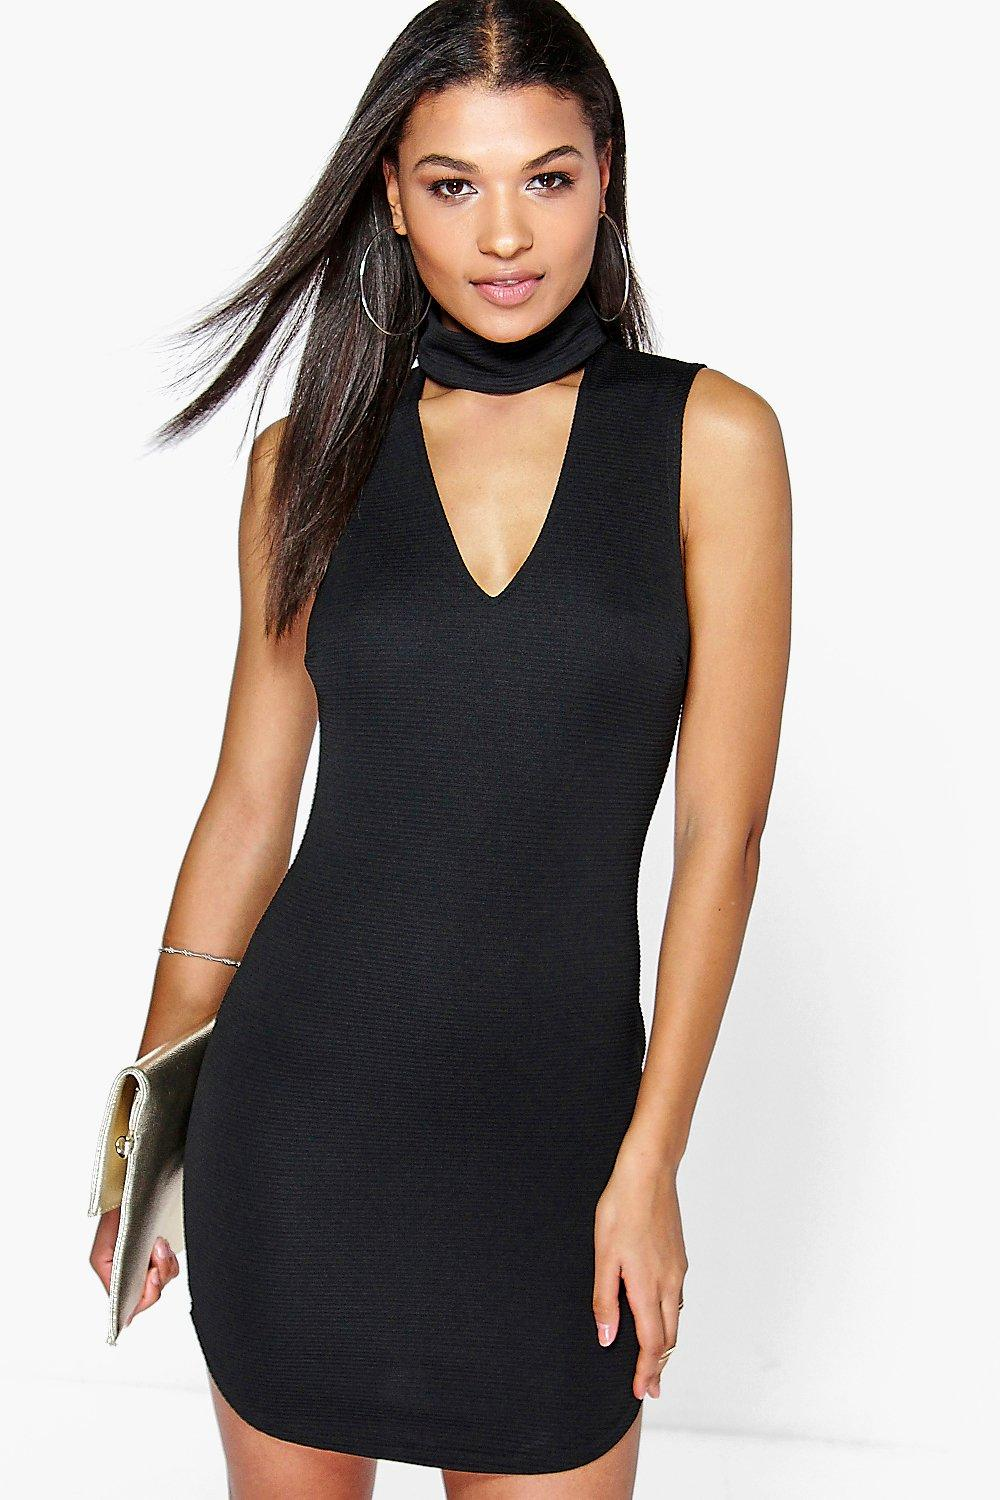 Khloe Cut Out Front Textured Bodycon Dress